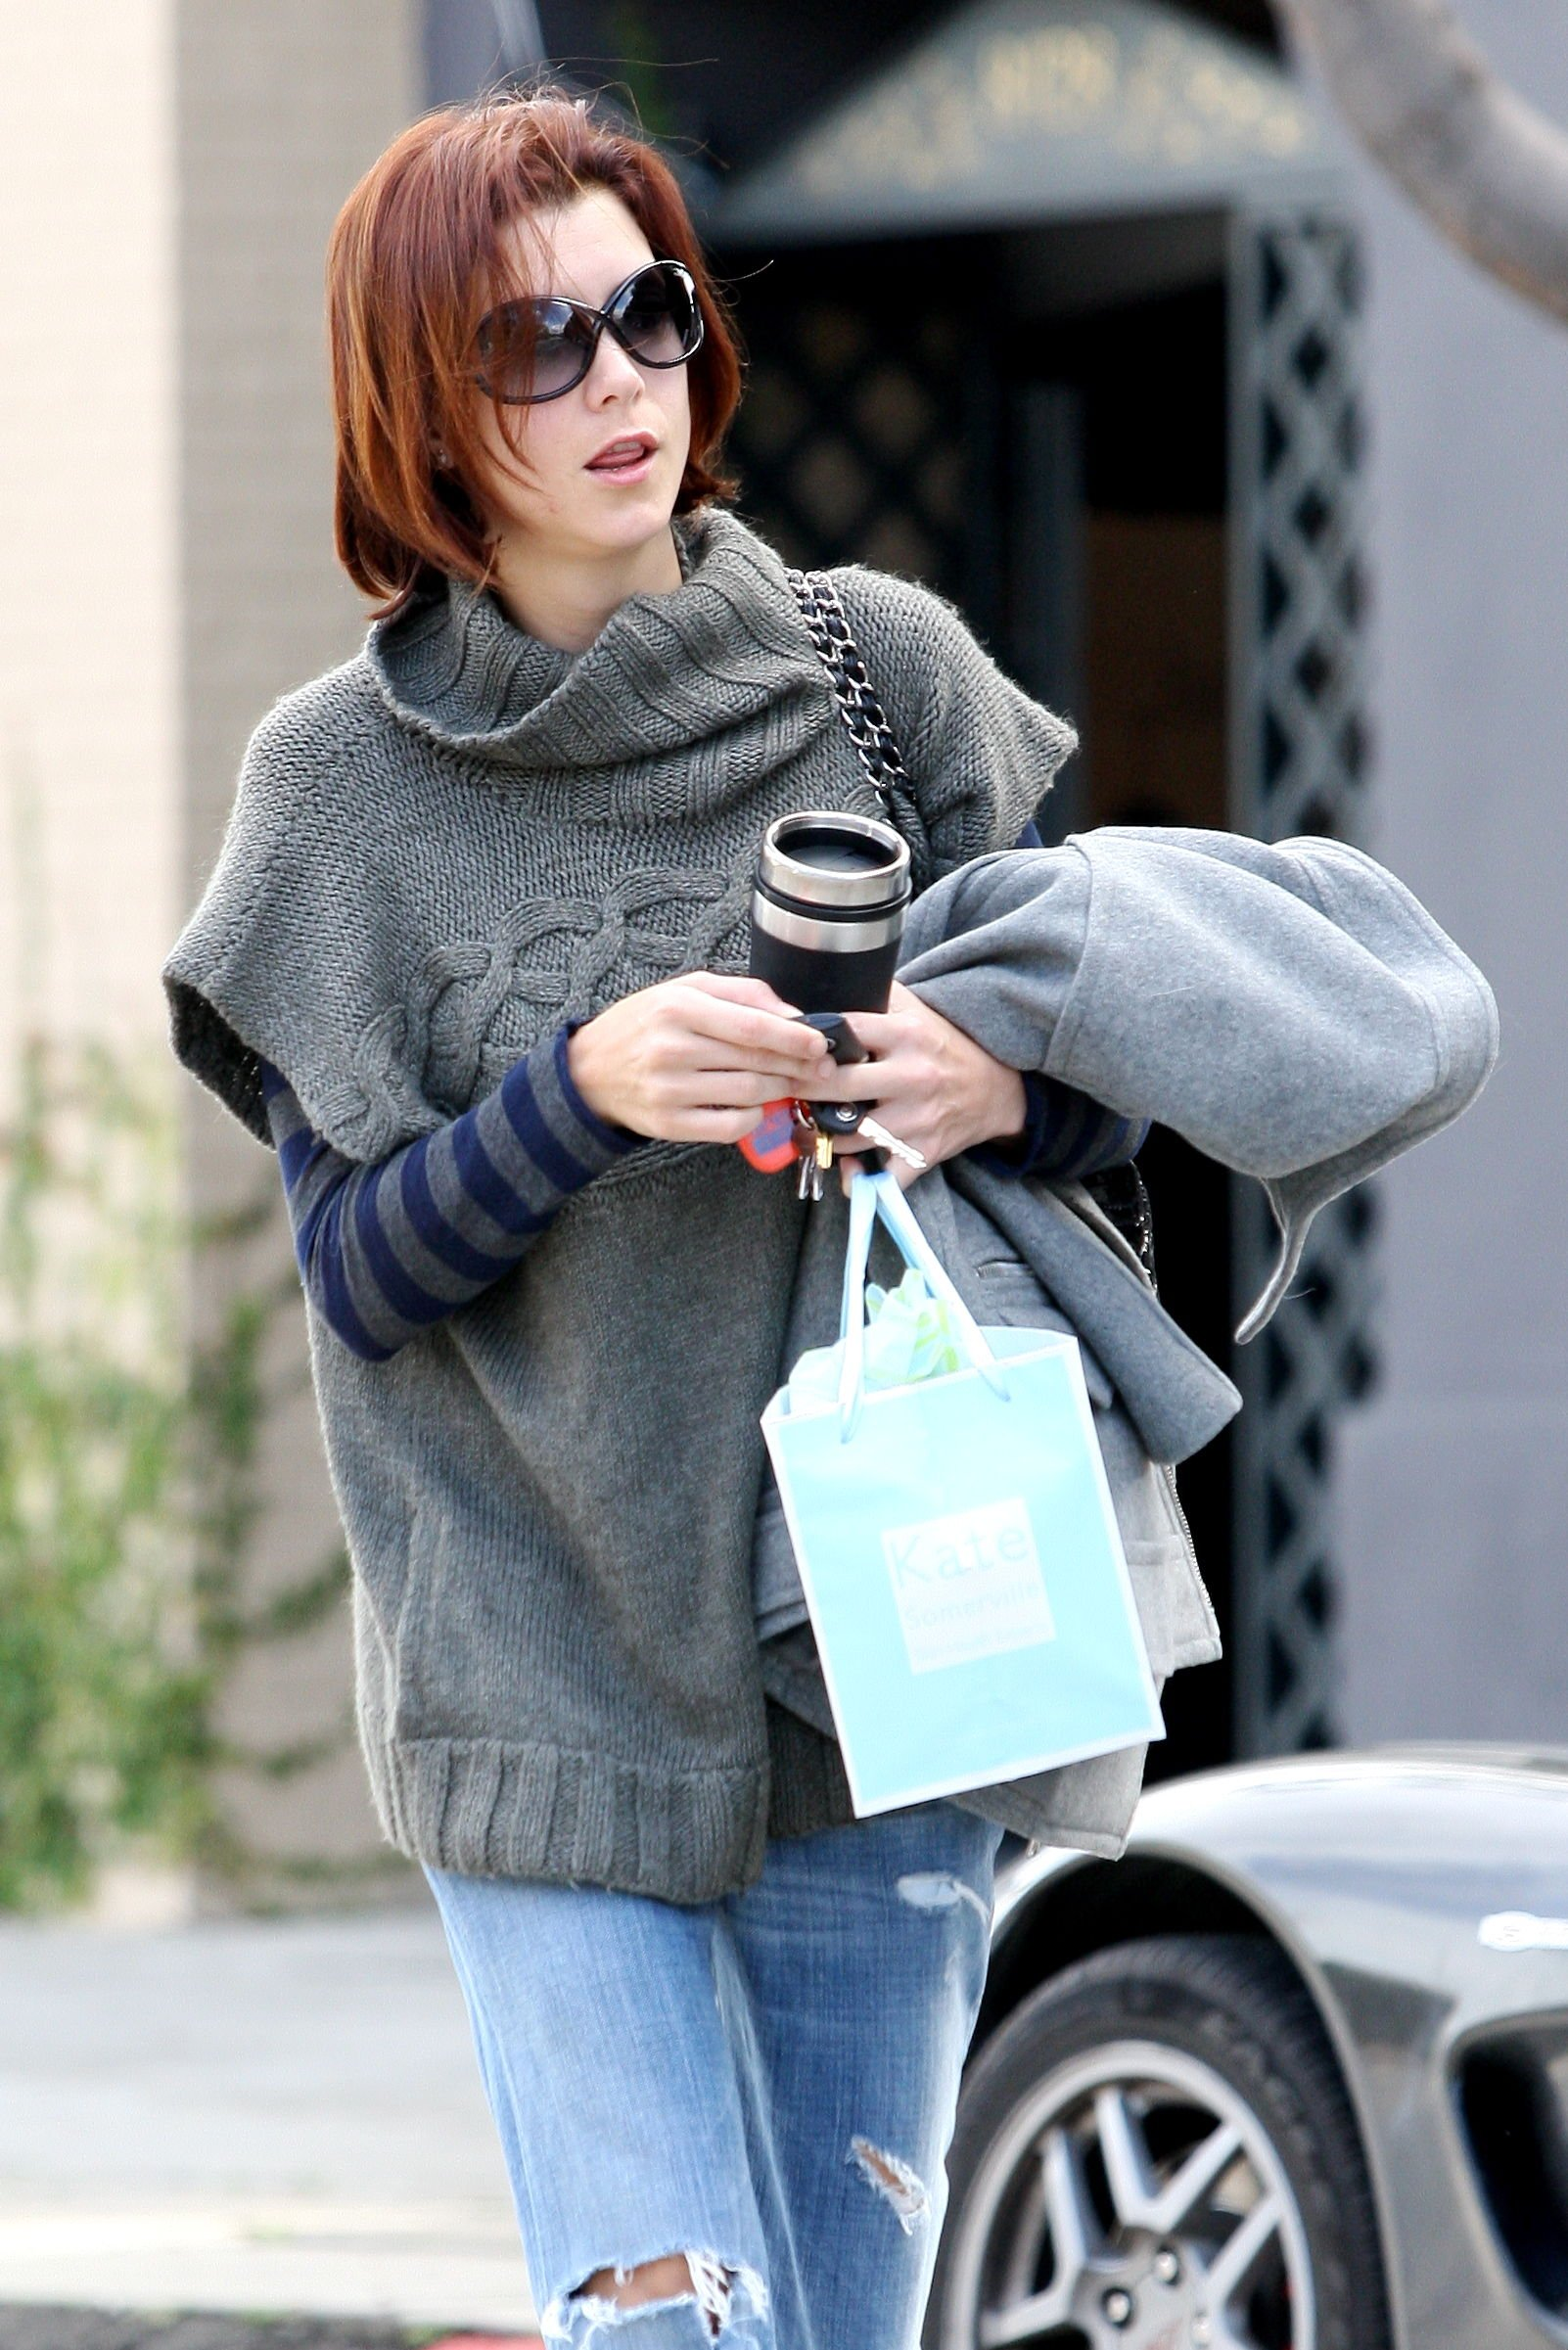 10883_Celebutopia-Kate_Walsh_with_ripped_jeans_in_Hollywood-12_122_830lo.JPG